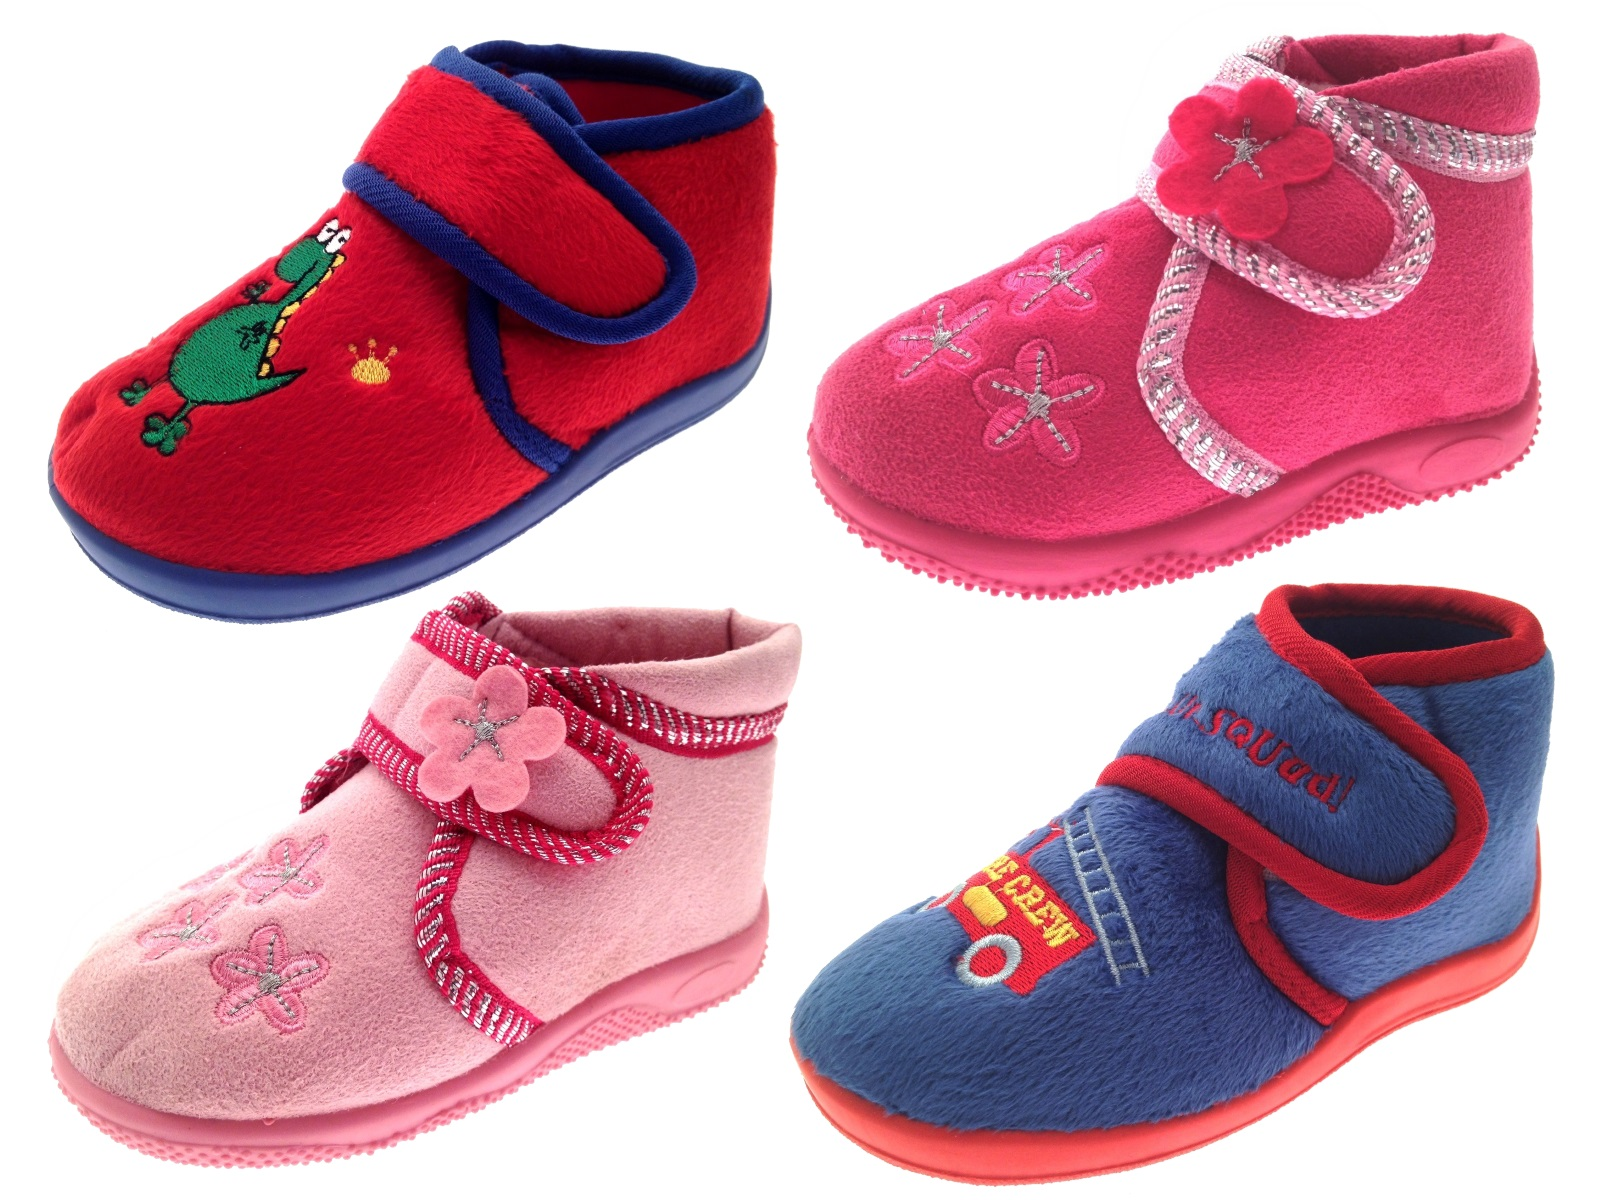 Kids Boys Girls Toddlers Slippers Boots Booties Childrens Shoes Xmas Size 4-10 | EBay